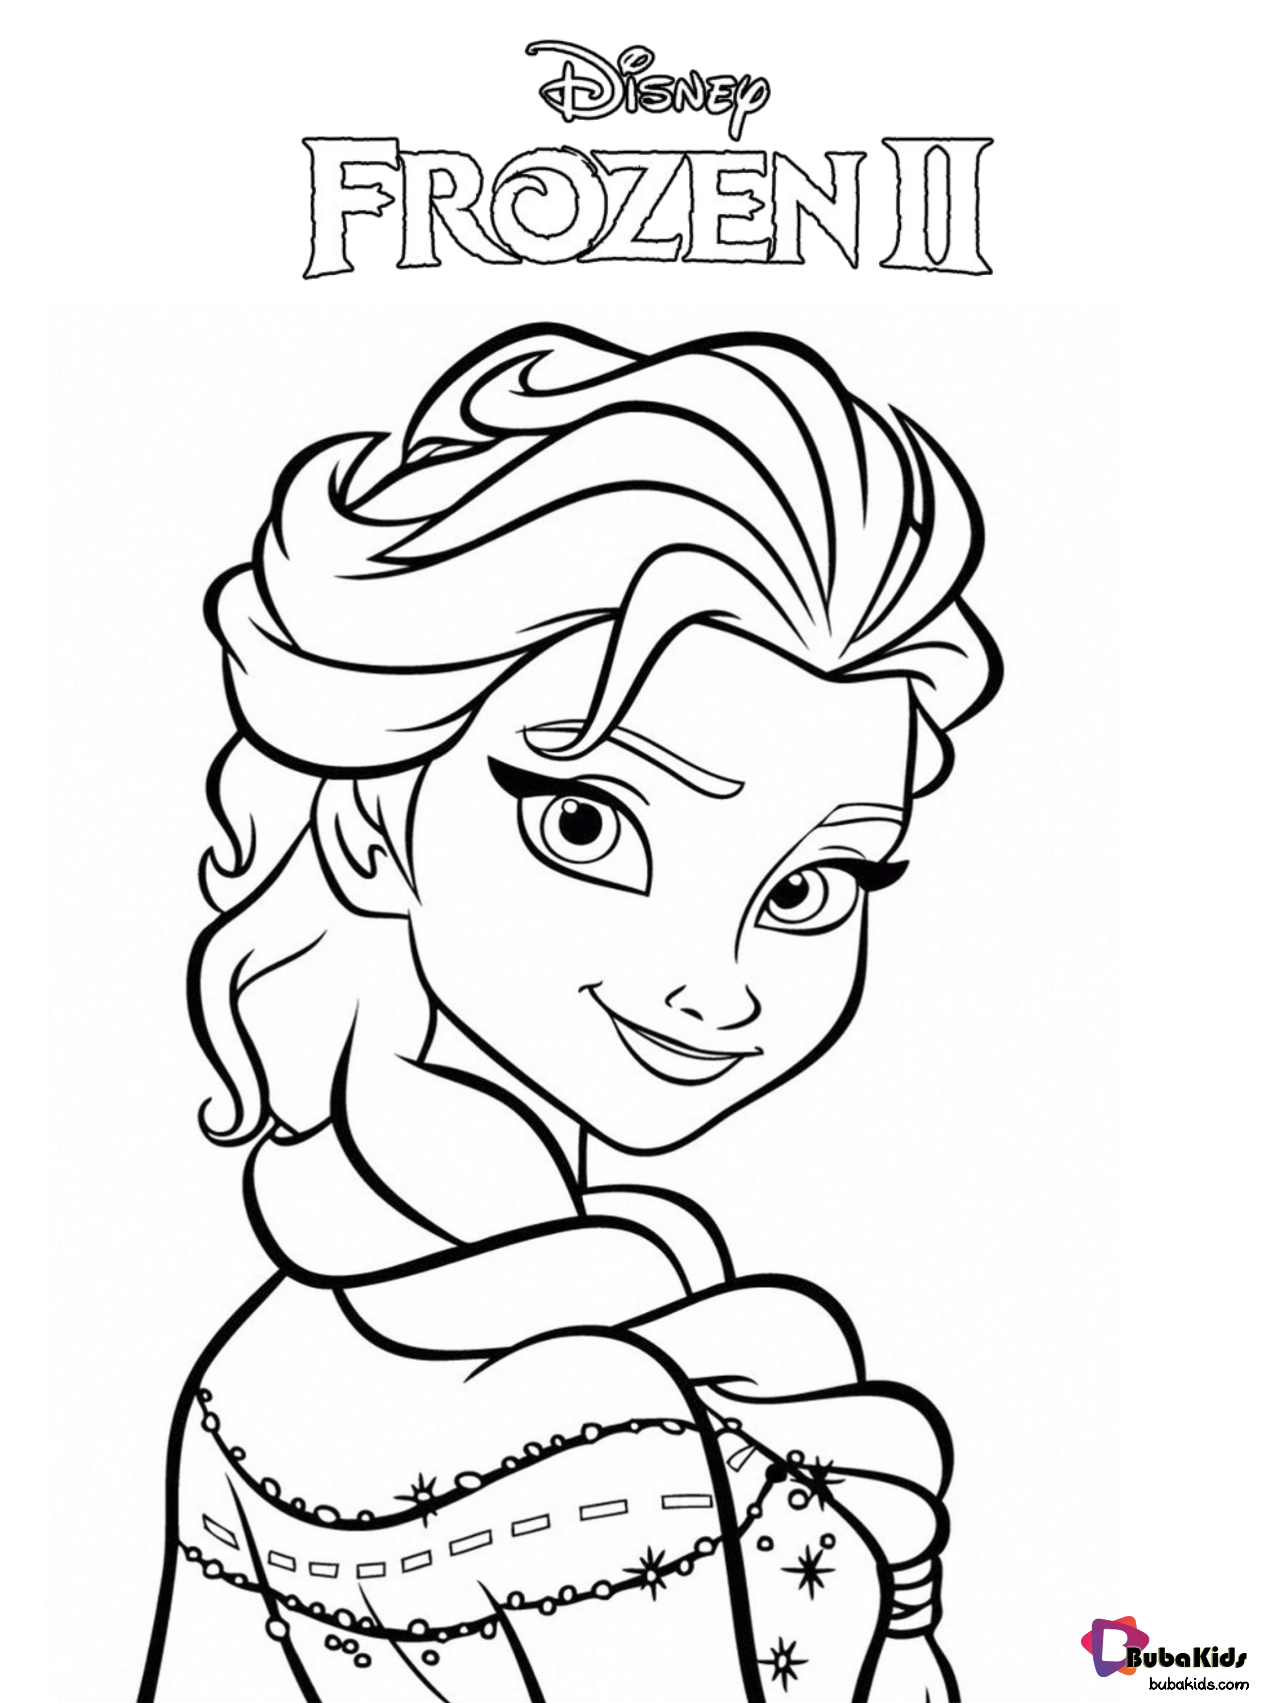 Free Download And Printable Frozen 2 Queen Elsa Coloring Page Elsa Frozen 2 Queen Elsa Elsa Elsa Coloring Pages Frozen Coloring Free Disney Coloring Pages